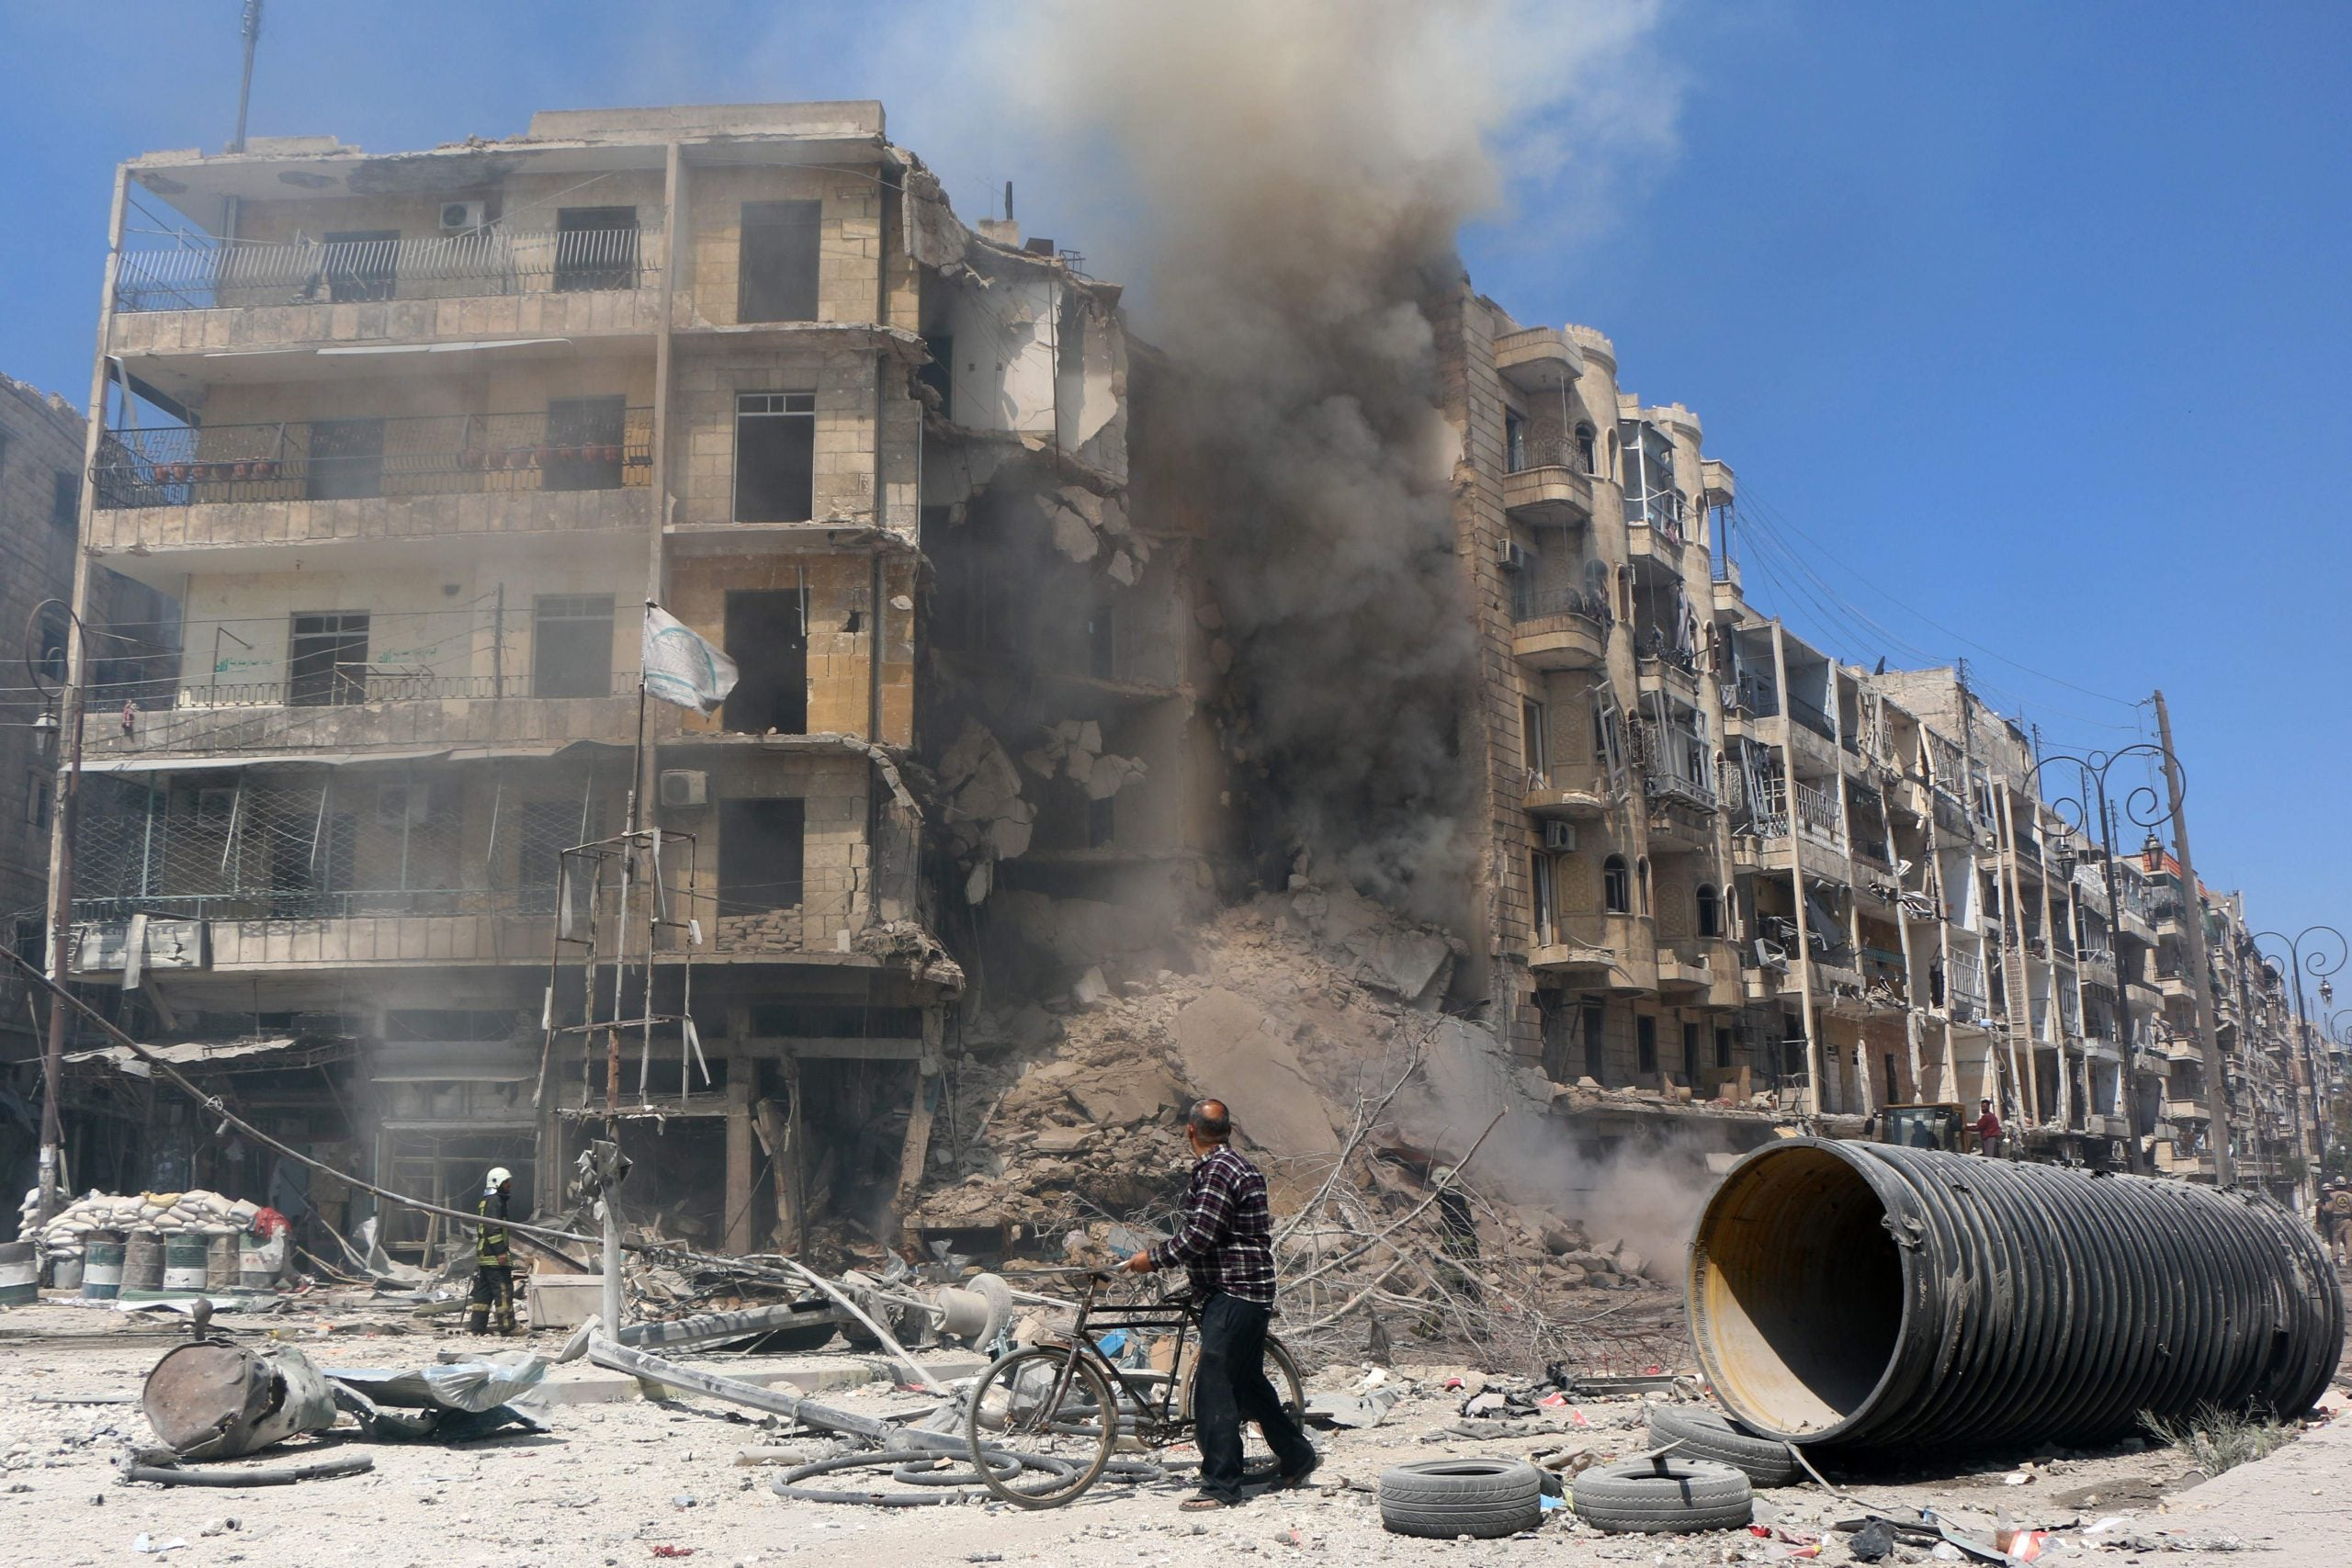 In Aleppo, the buildings are strong – it's the communities that will be hard to rebuild